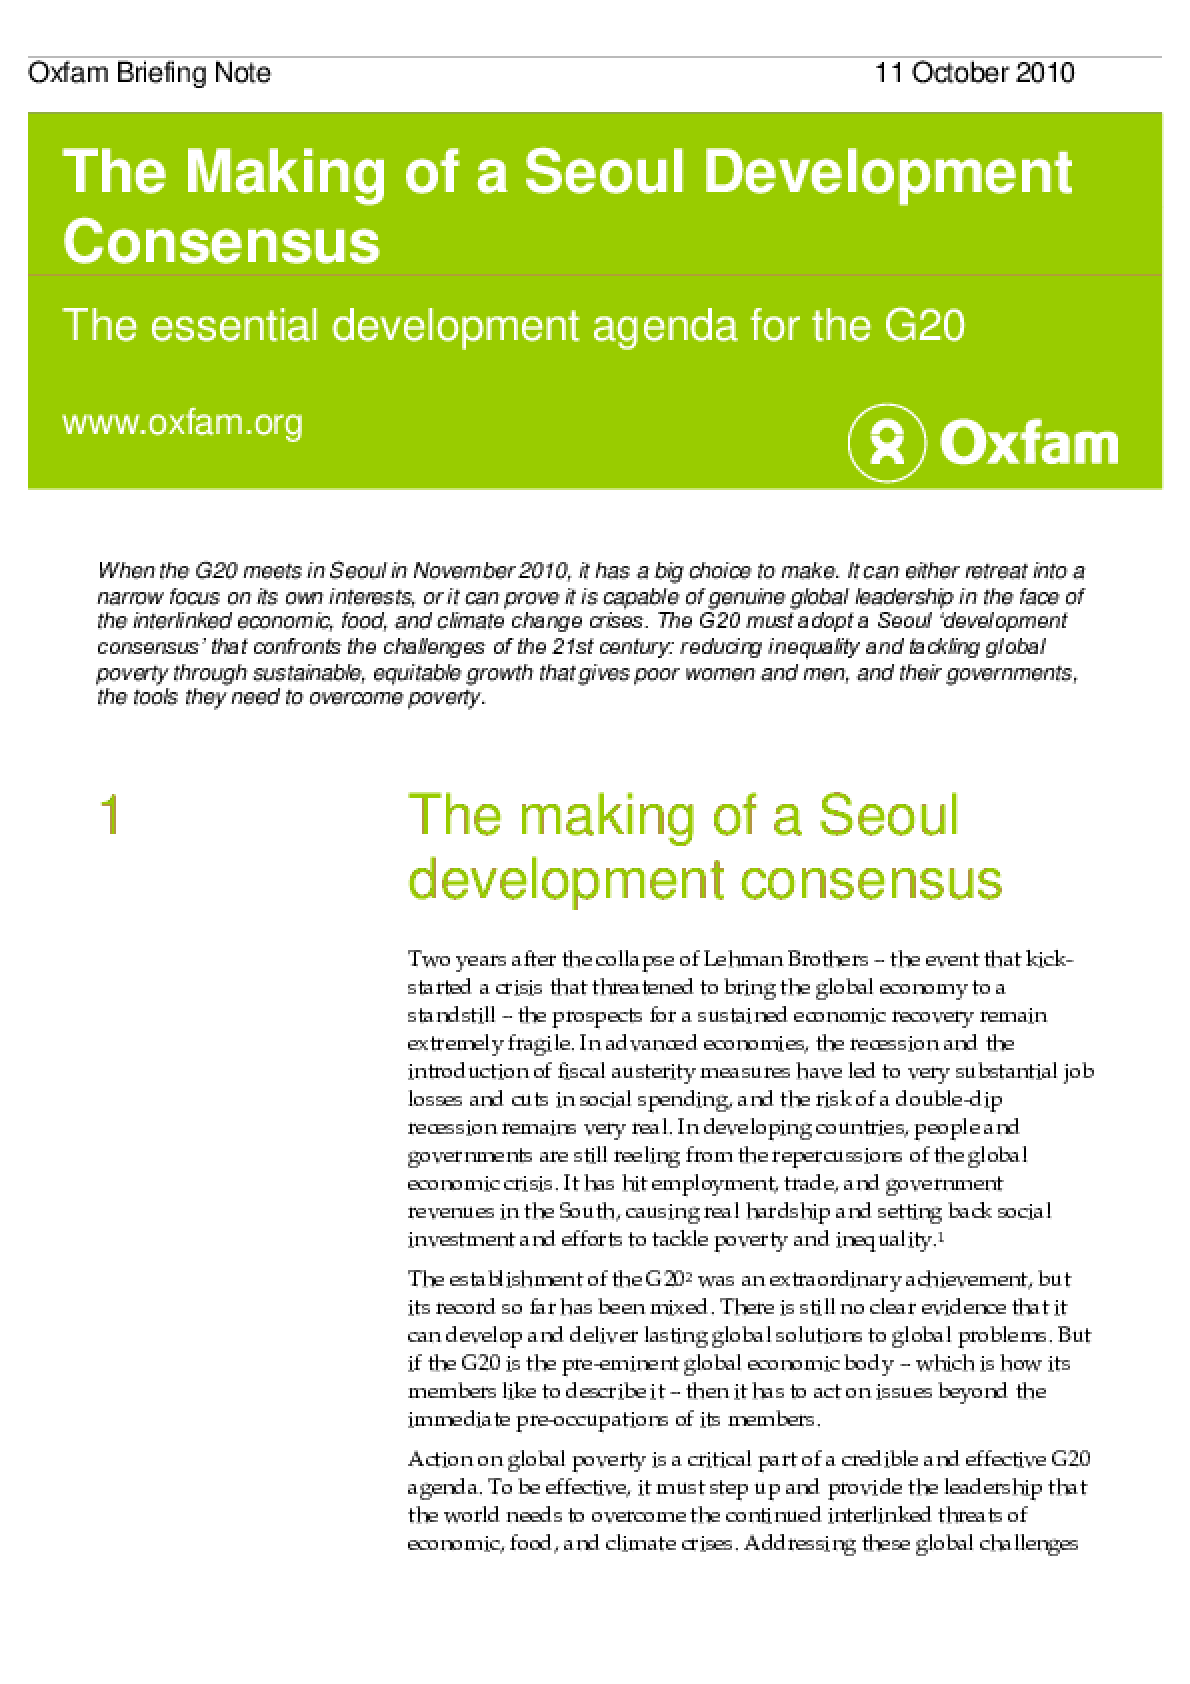 The Making of a Seoul Development Consensus: The essential development agenda for the G20